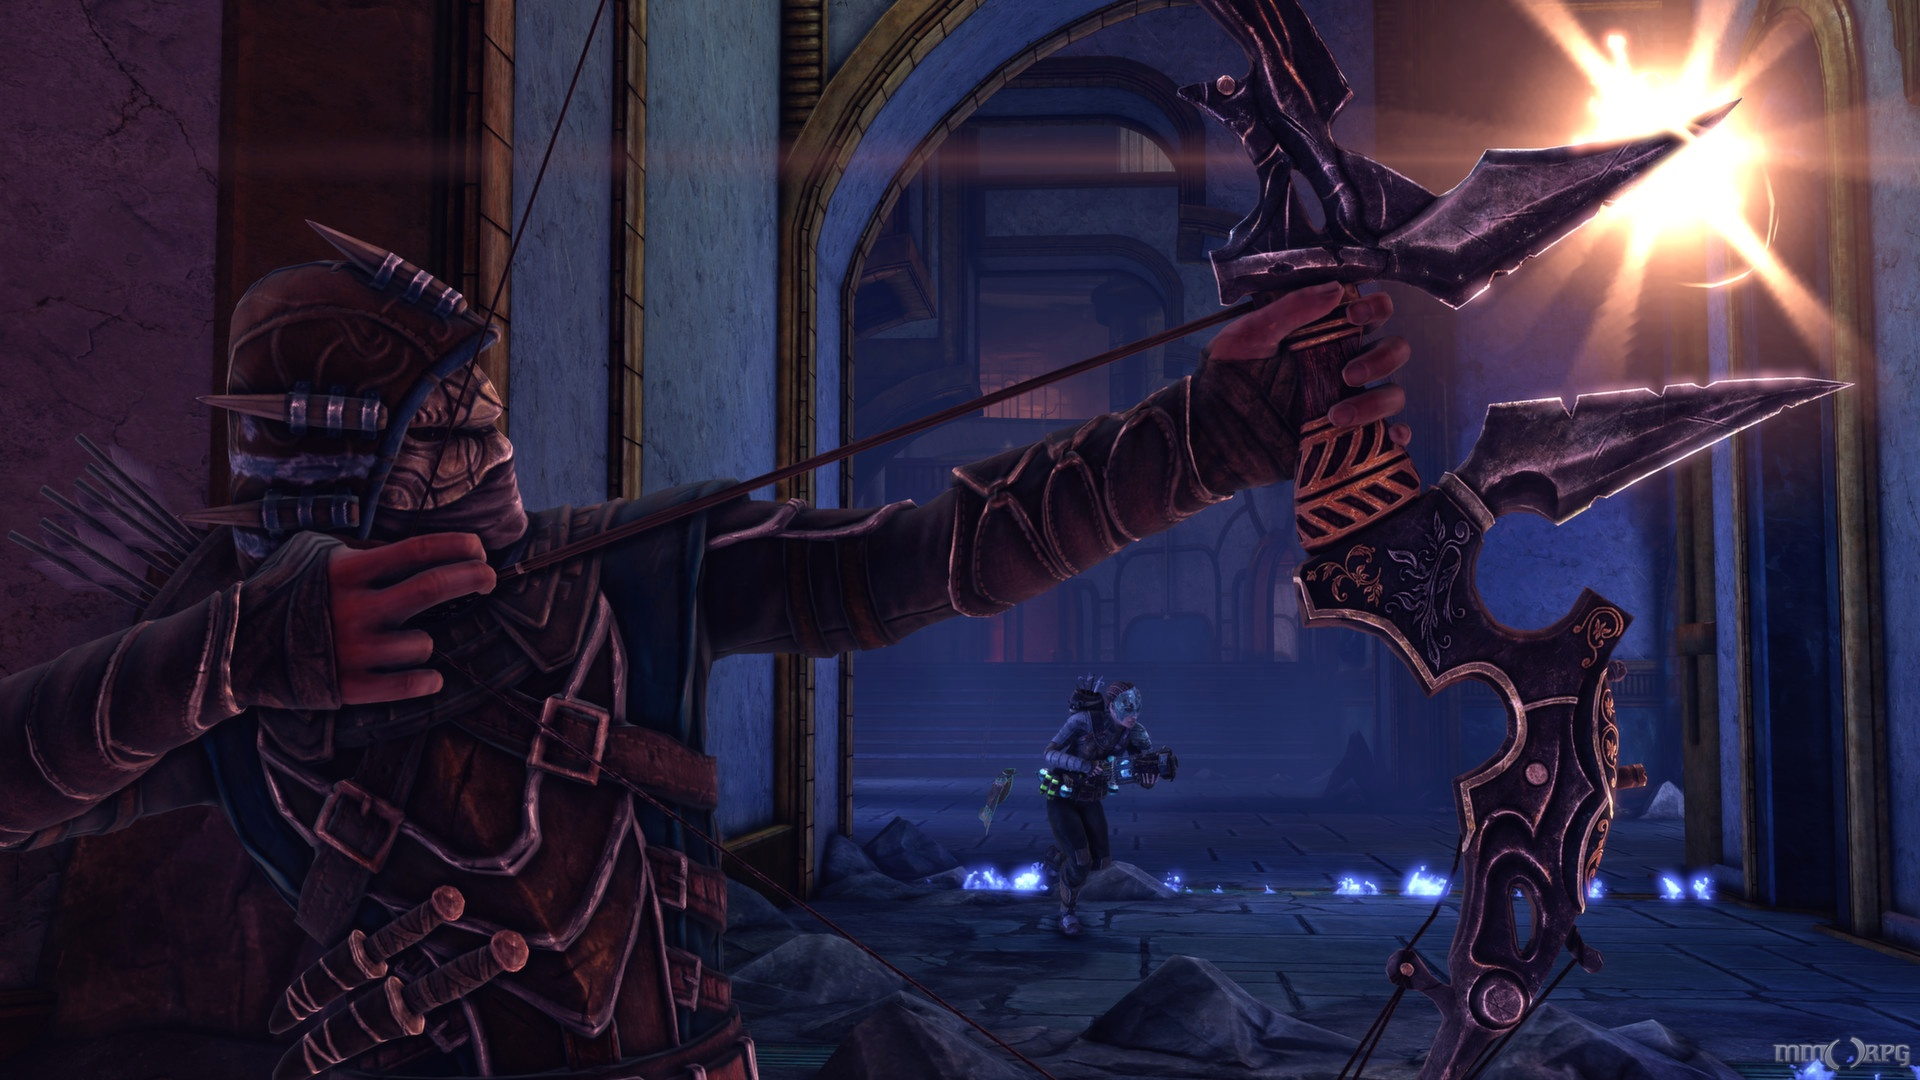 Nosgoth is a competitive, third-person action game set in the Legacy of Kain universe where playes play both humans and vampires.